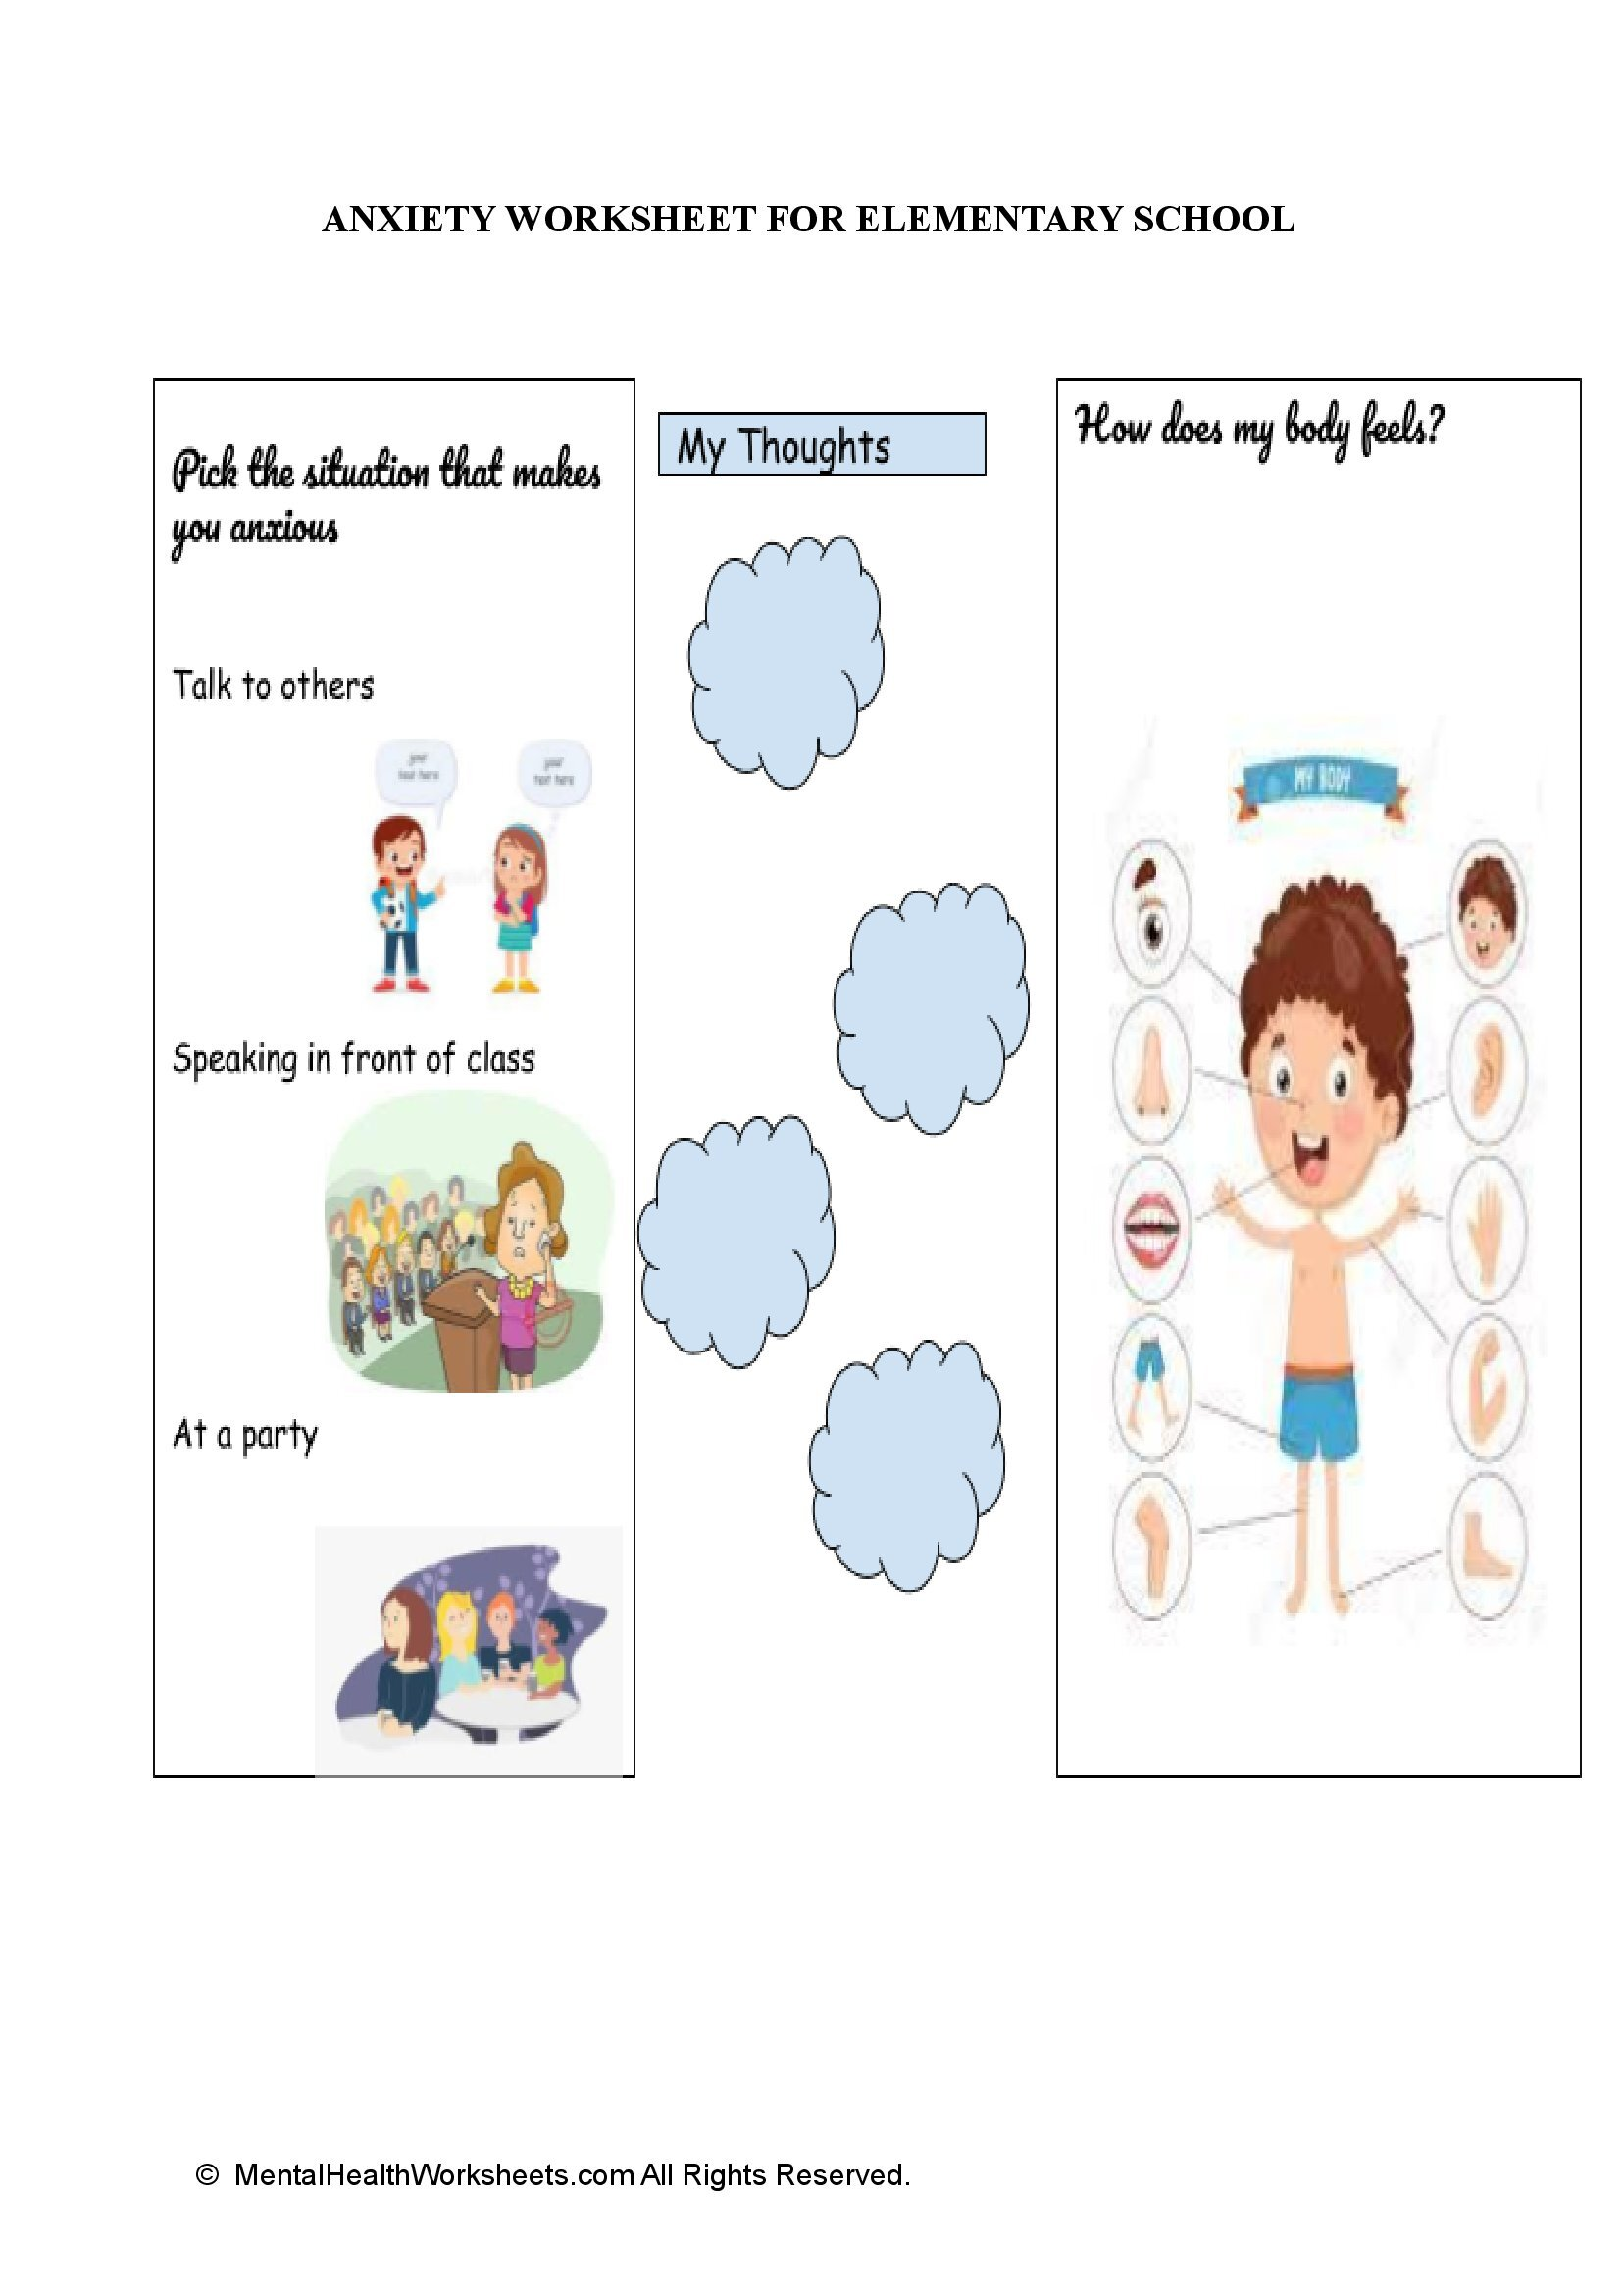 ANXIETY WORKSHEET FOR ELEMENTARY SCHOOL